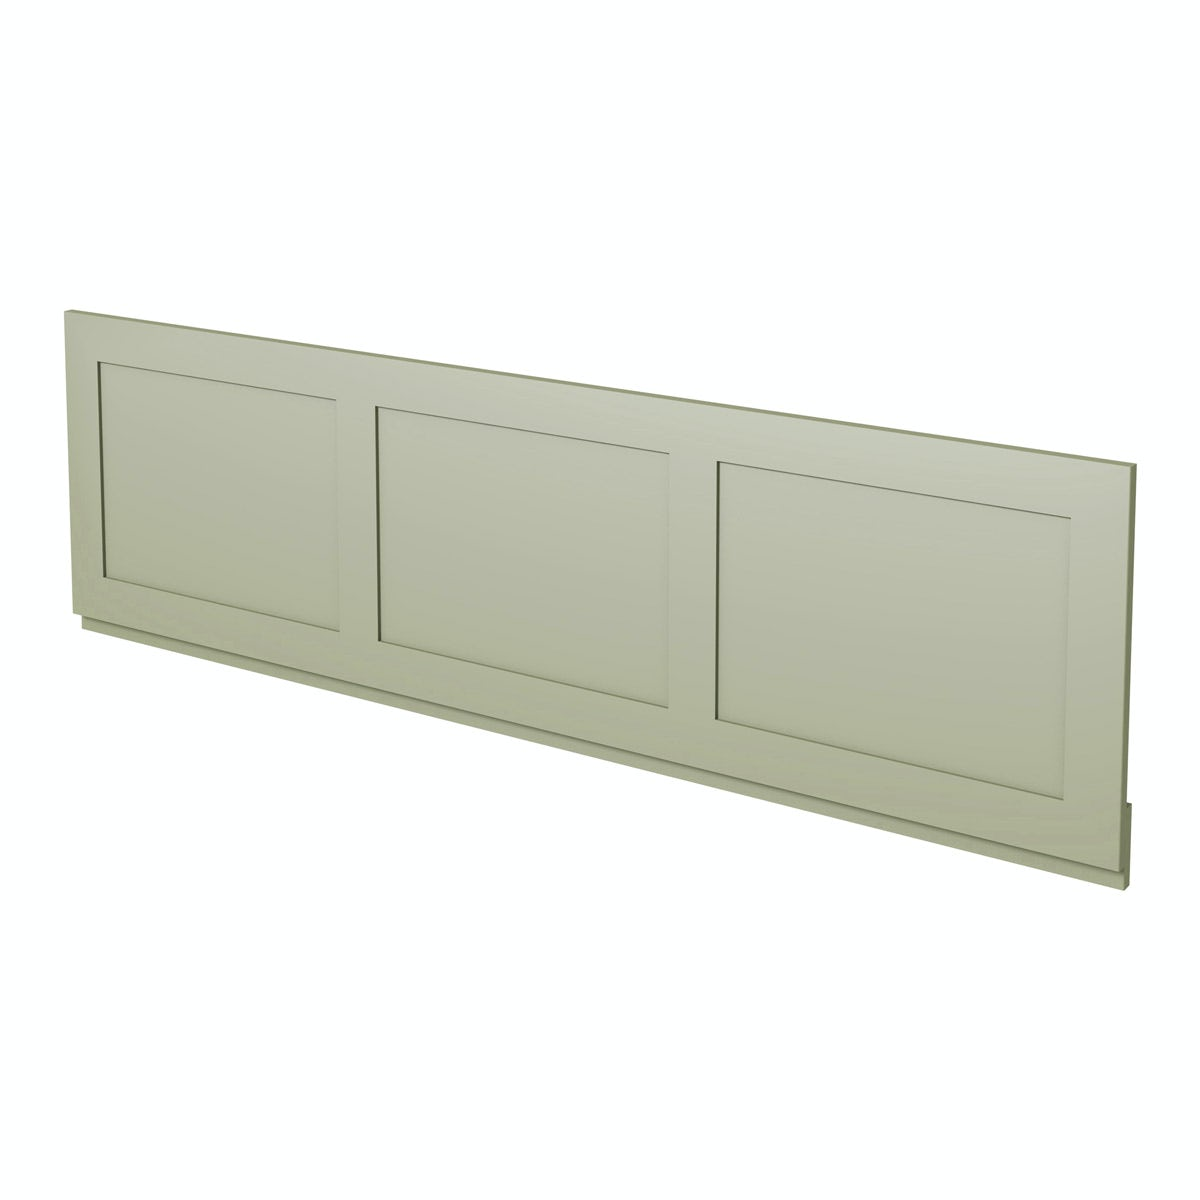 Camberley Sage wooden straight bath front panel 1700